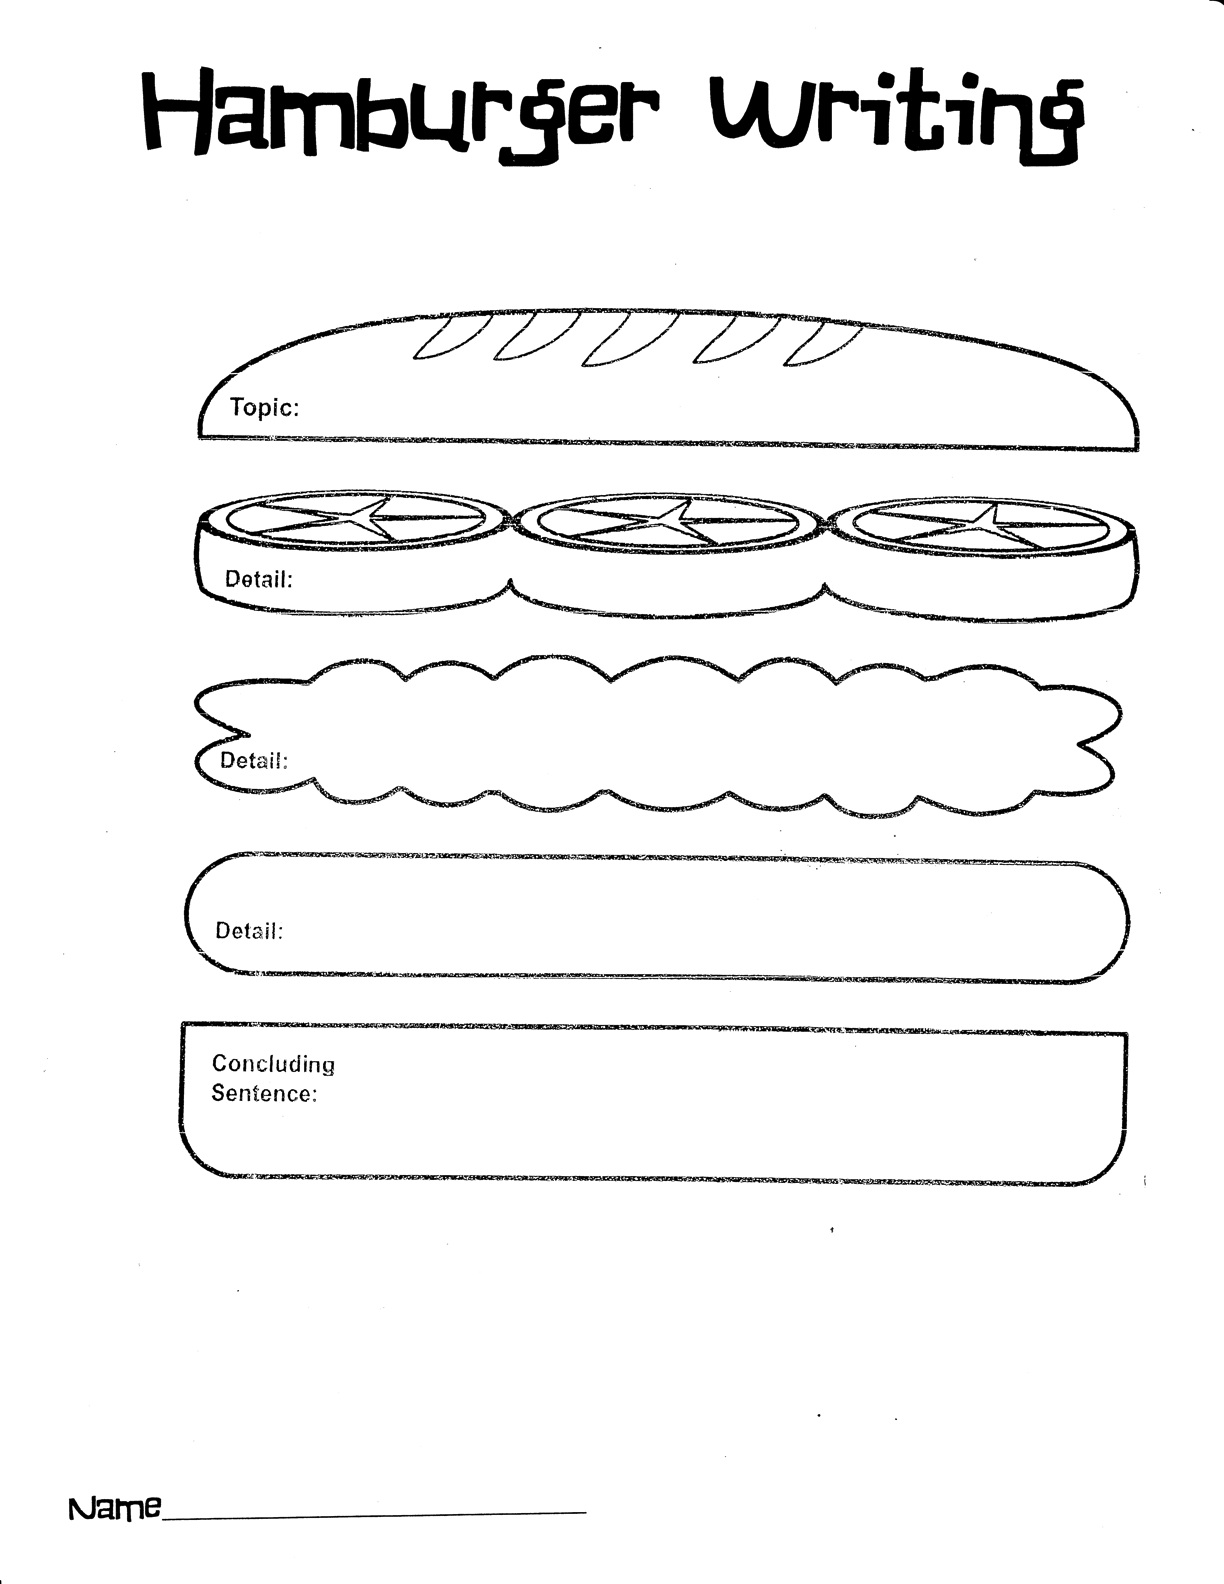 What The Teacher Wants Hamburger Writing